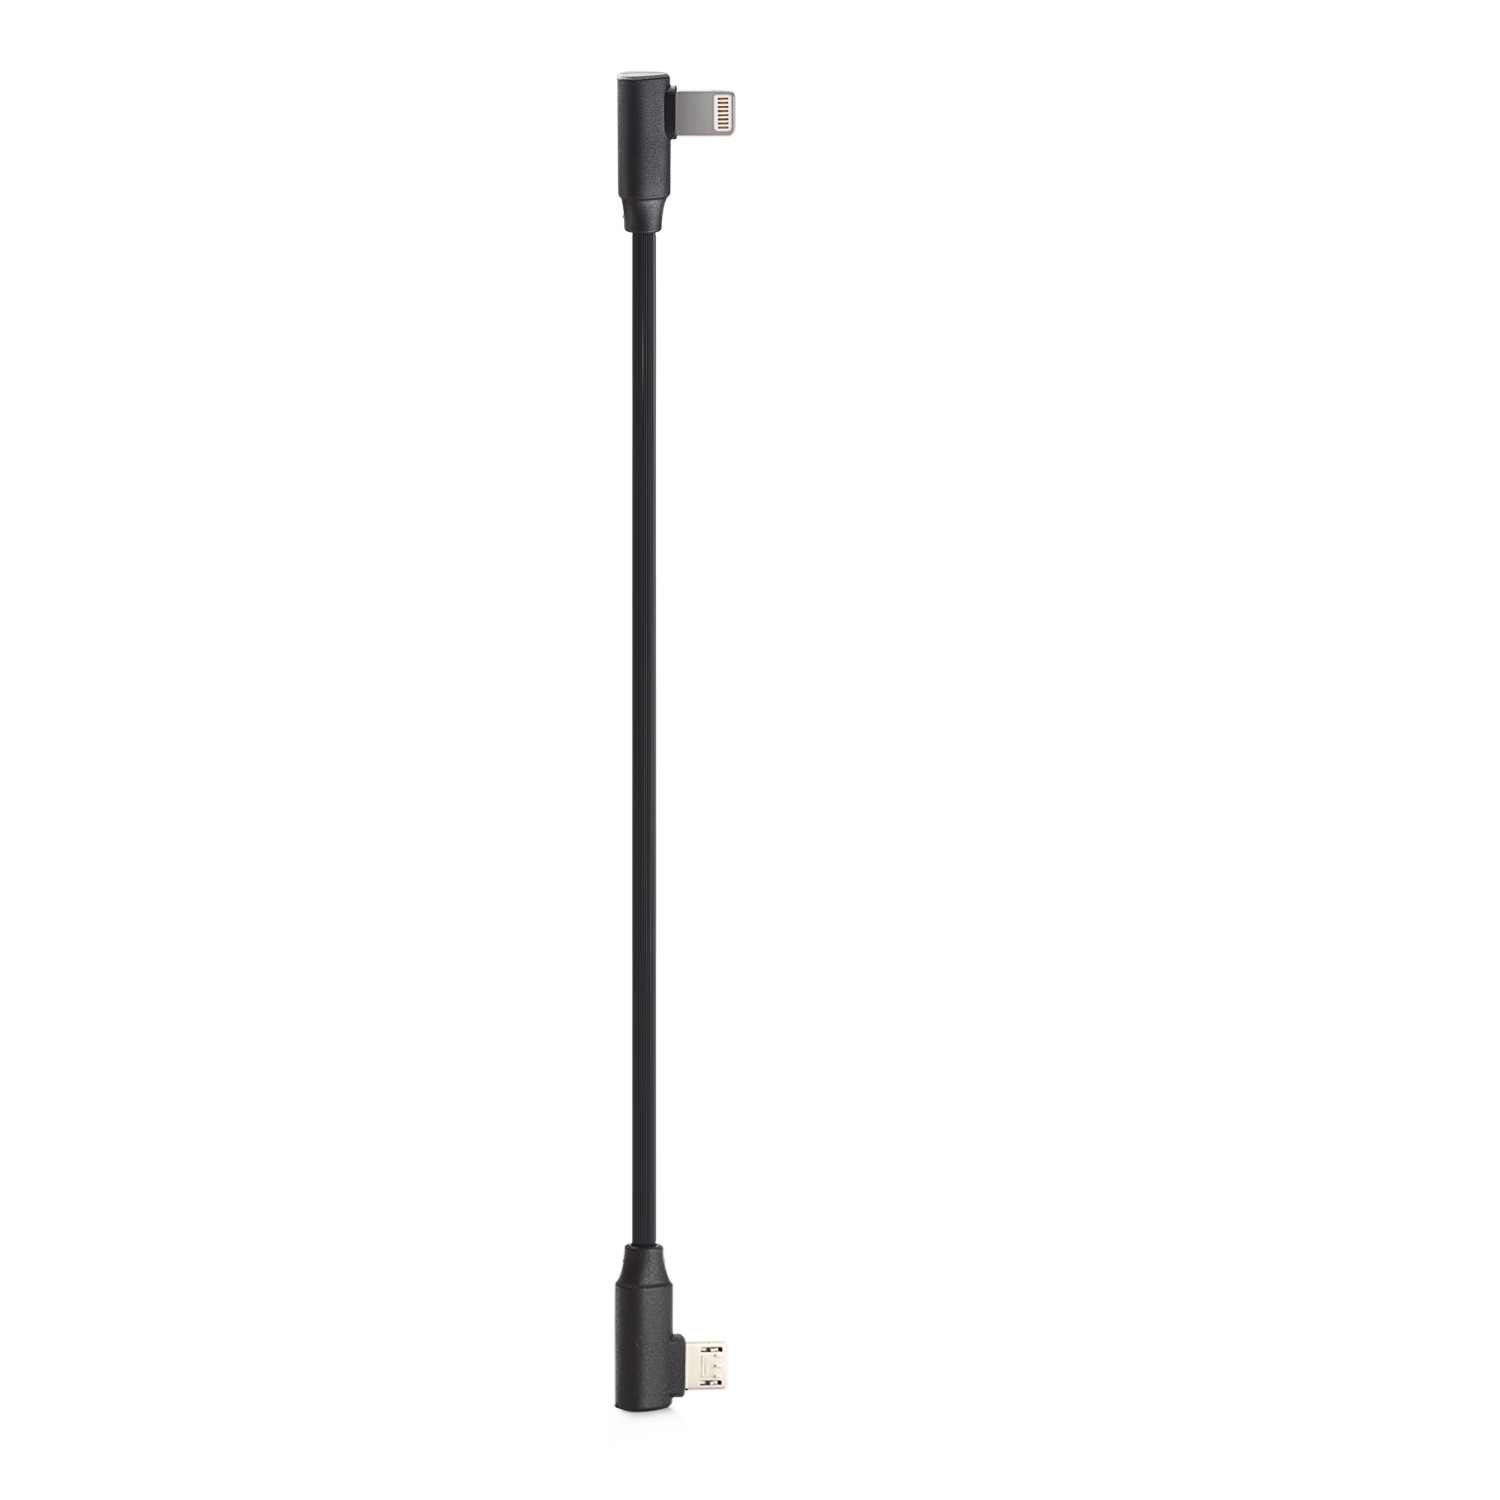 Efficient Lightning Charging Cable For Zhiyun Smooth 4 / Feiyu Vimble 2 Used With Iphone X 8 8plus 7 7plus 6s 6splus 6 6 Plus, Se, 5s, 5c